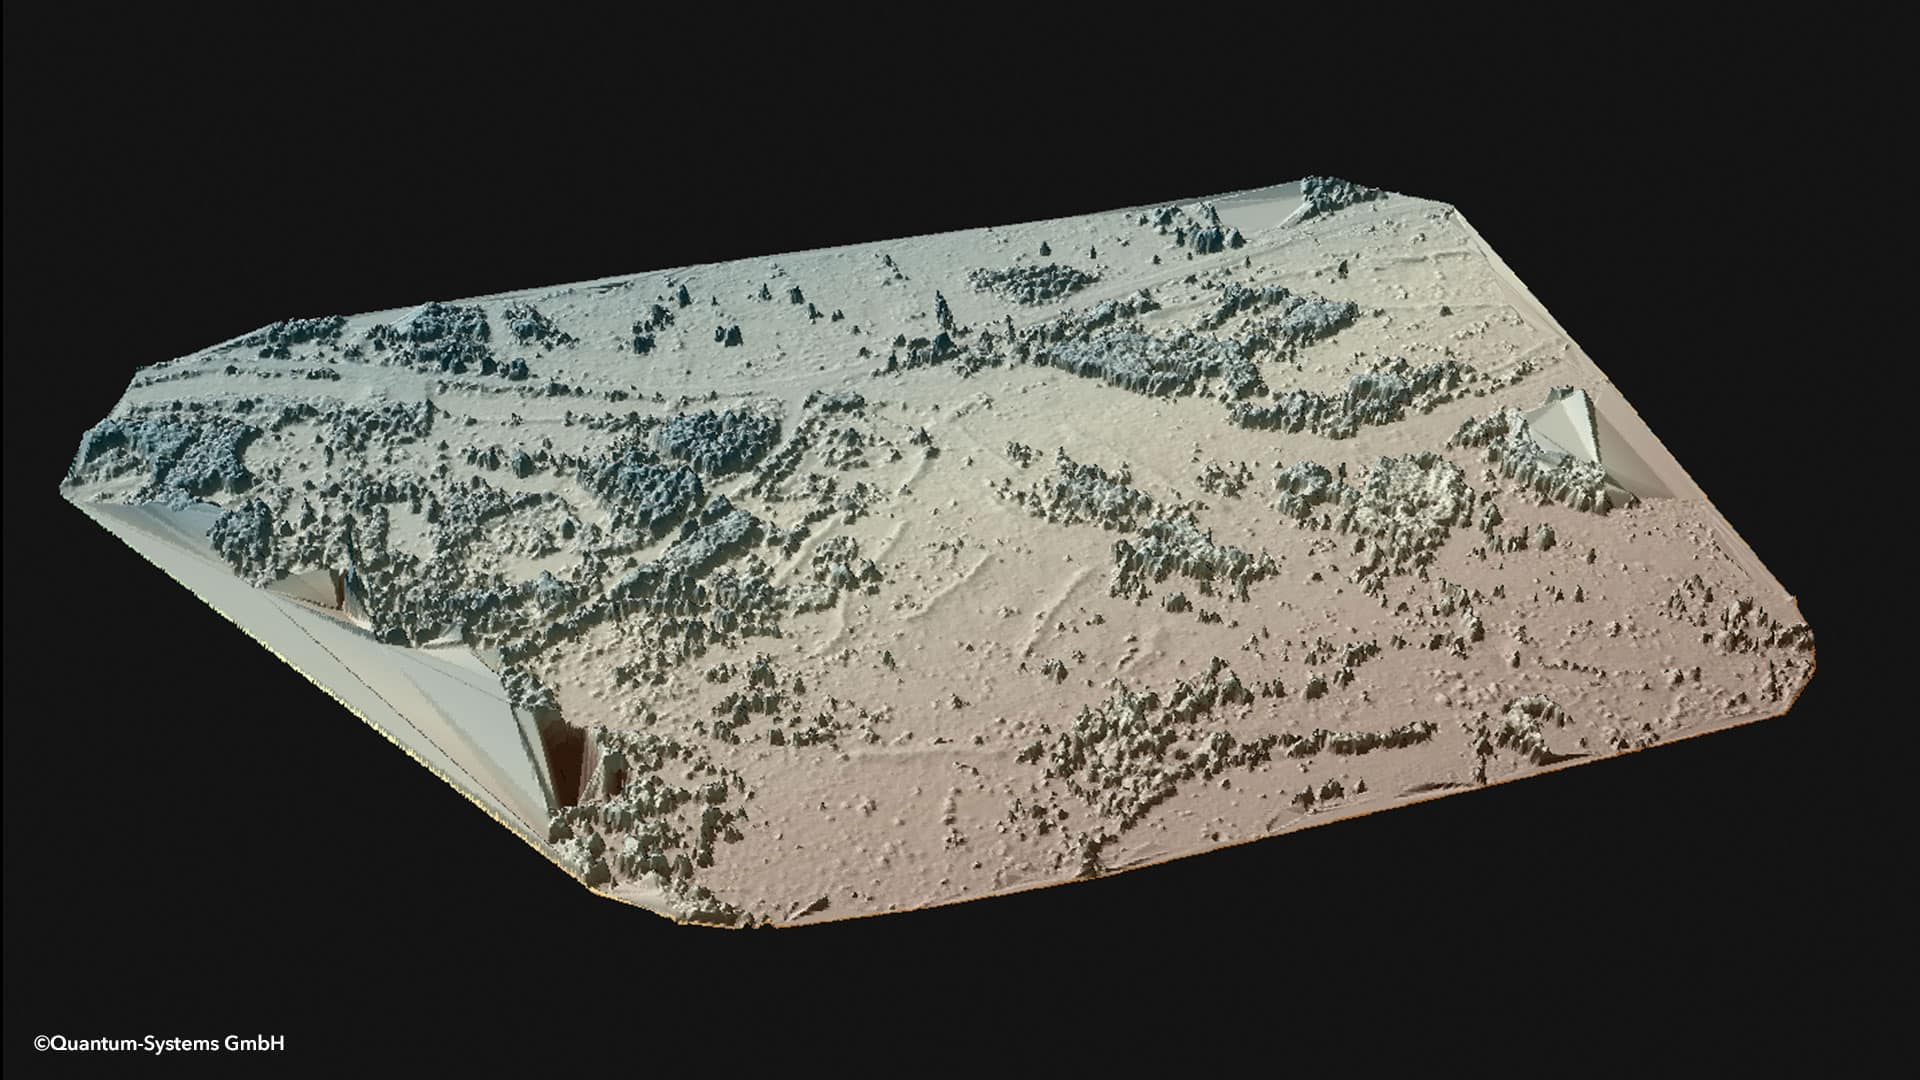 Figure 4: Terrain difference in the middle of the image due to burials of radiation contaminated material (Source: Munich University of Applied Sciences / Quantum-Systems; Image generated using ESRI ArcScene